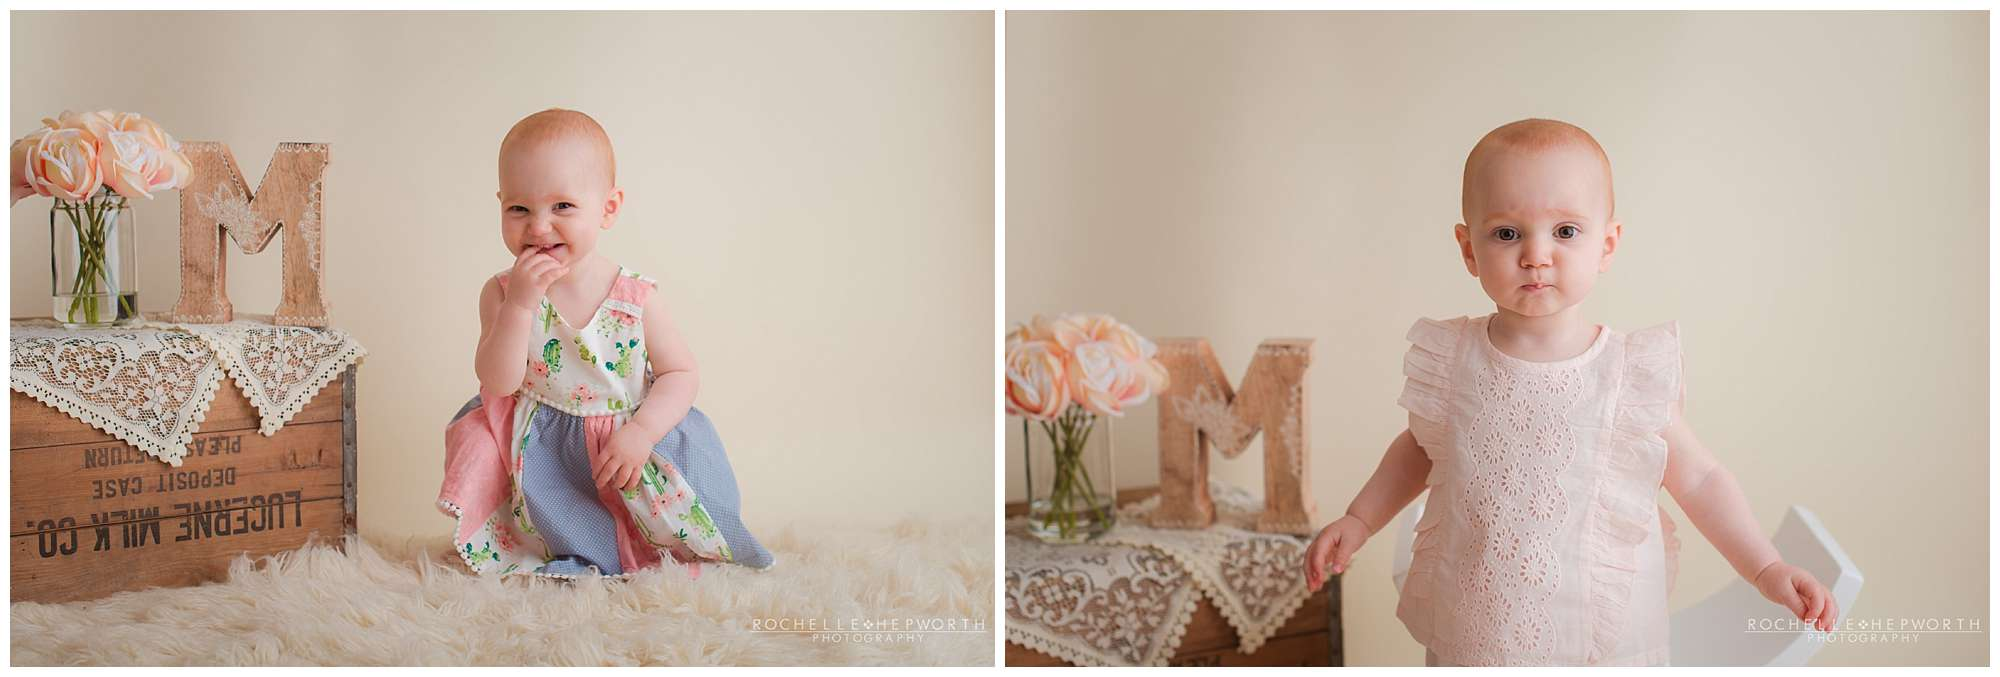 baby girl in floral dress smiling next to crate with letter M